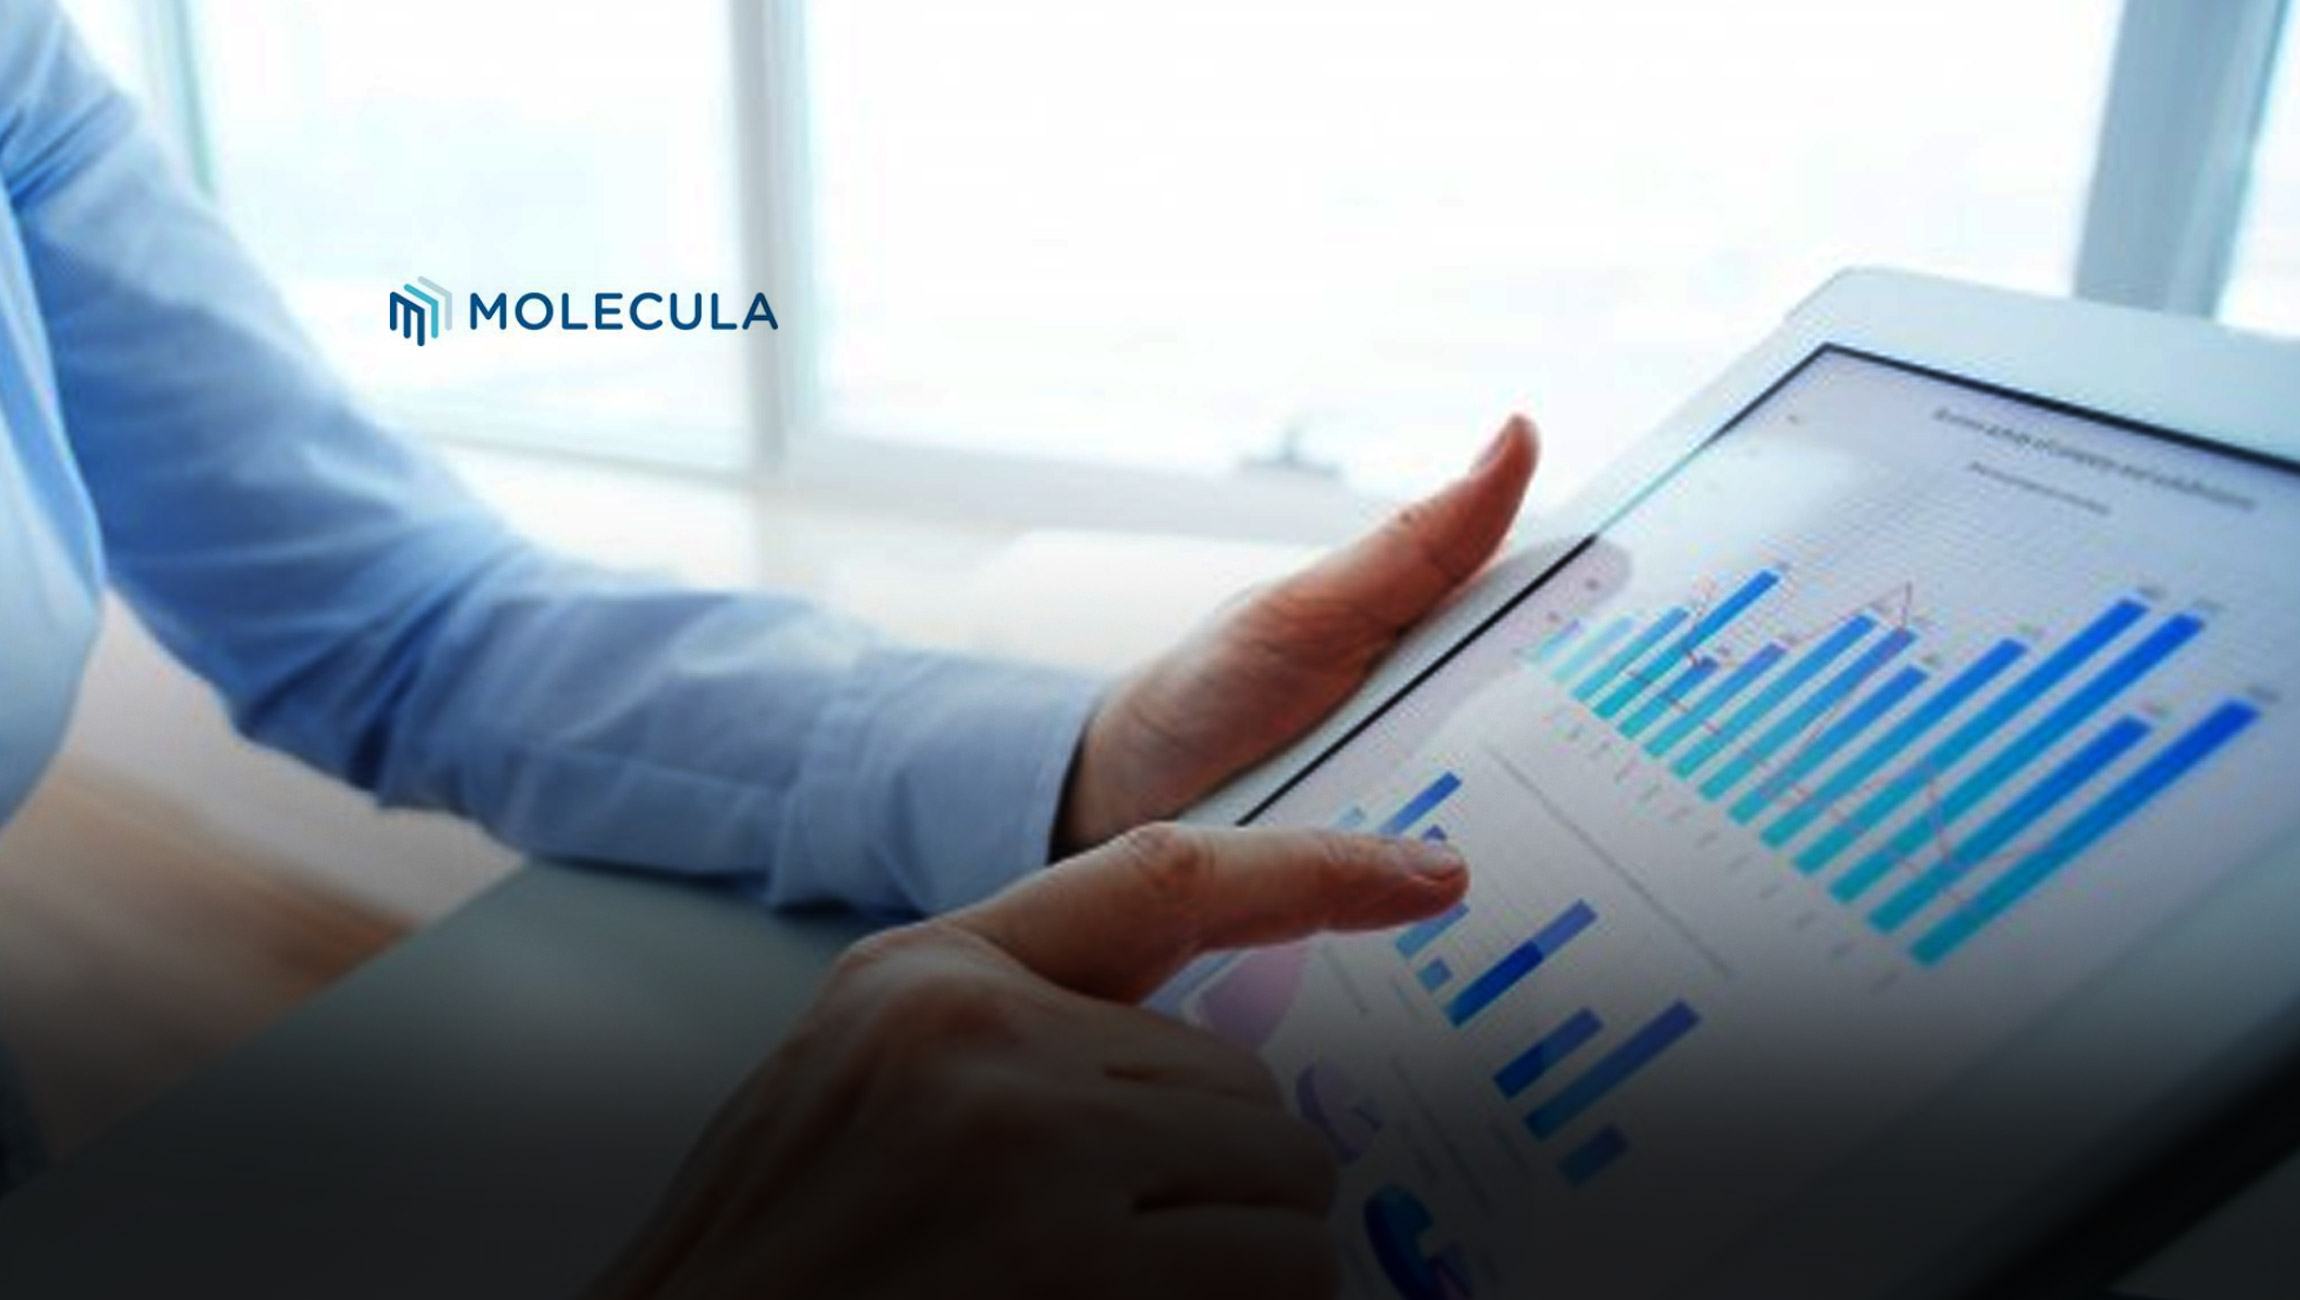 Molecula Secures $17.6 Million in Series A Funding to Democratize Machine-Scale Analytics and AI